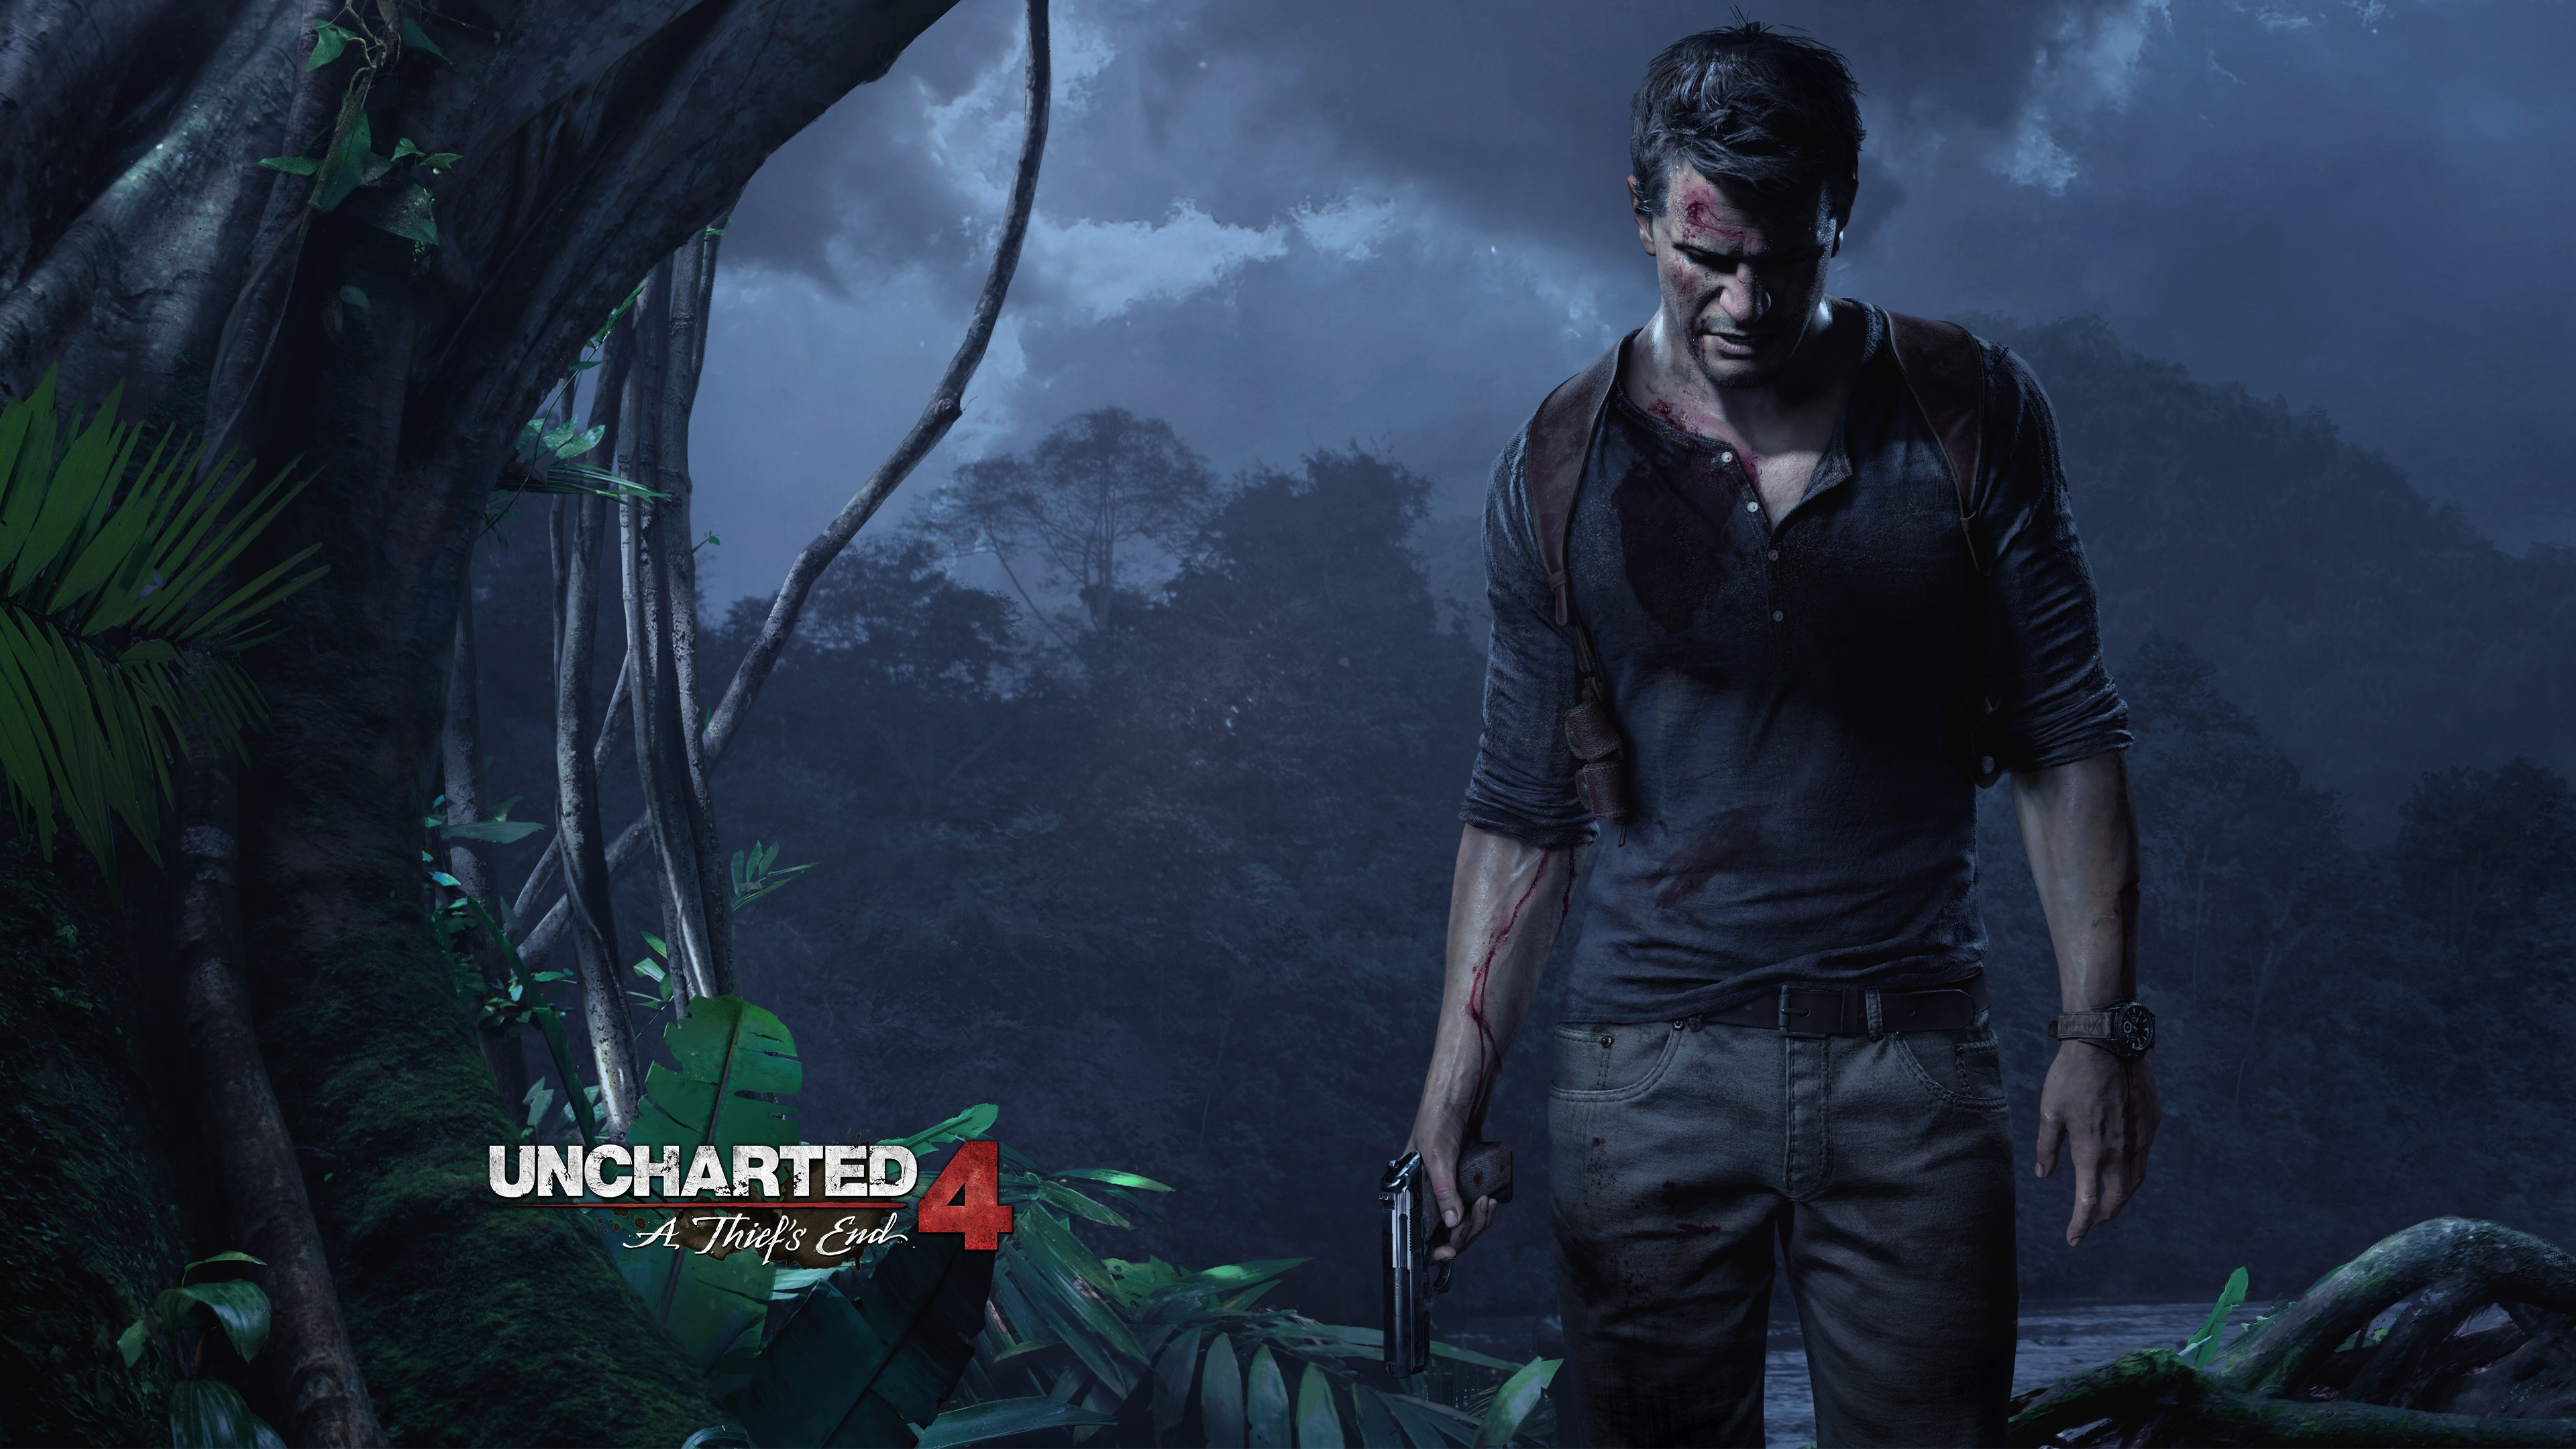 Uncharted 4 A Thief's End, Uncharted 4, Uncharted, four, video game, action, suit